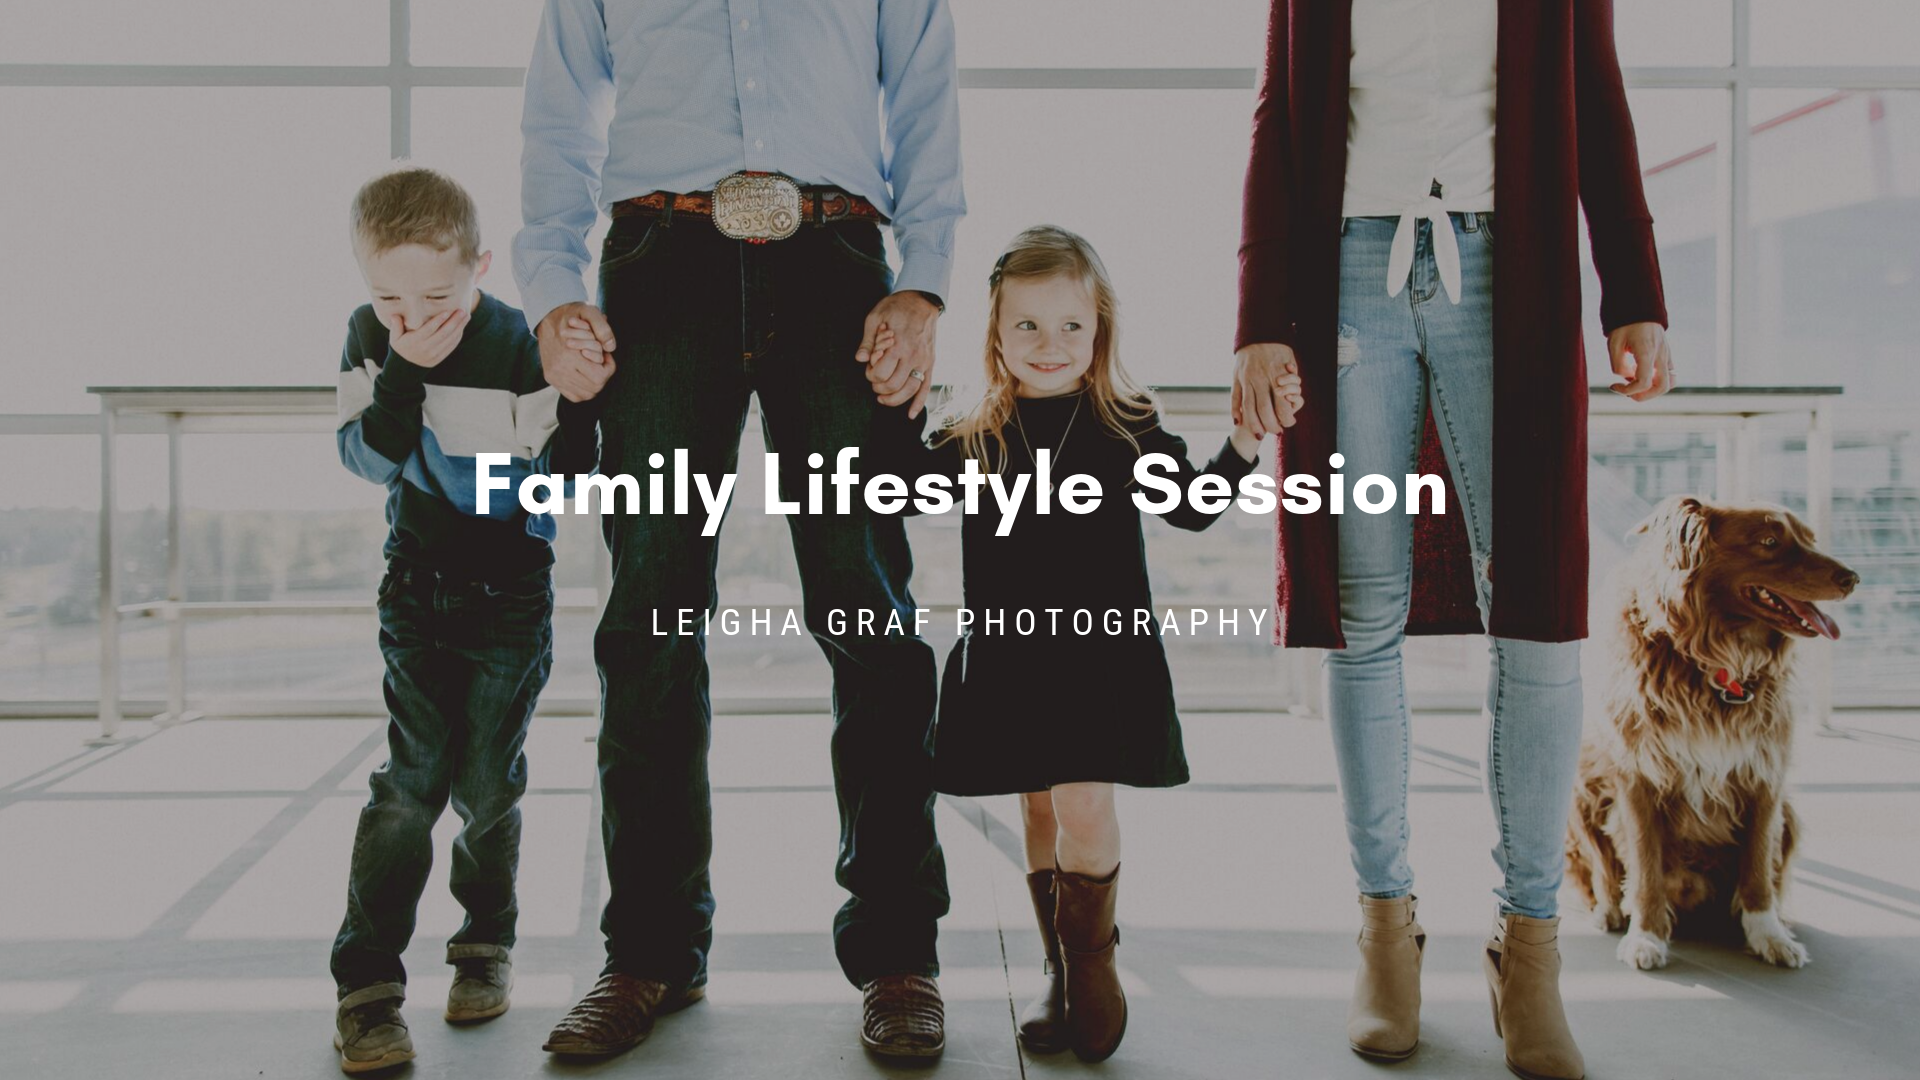 Family Lifestyle Session.png